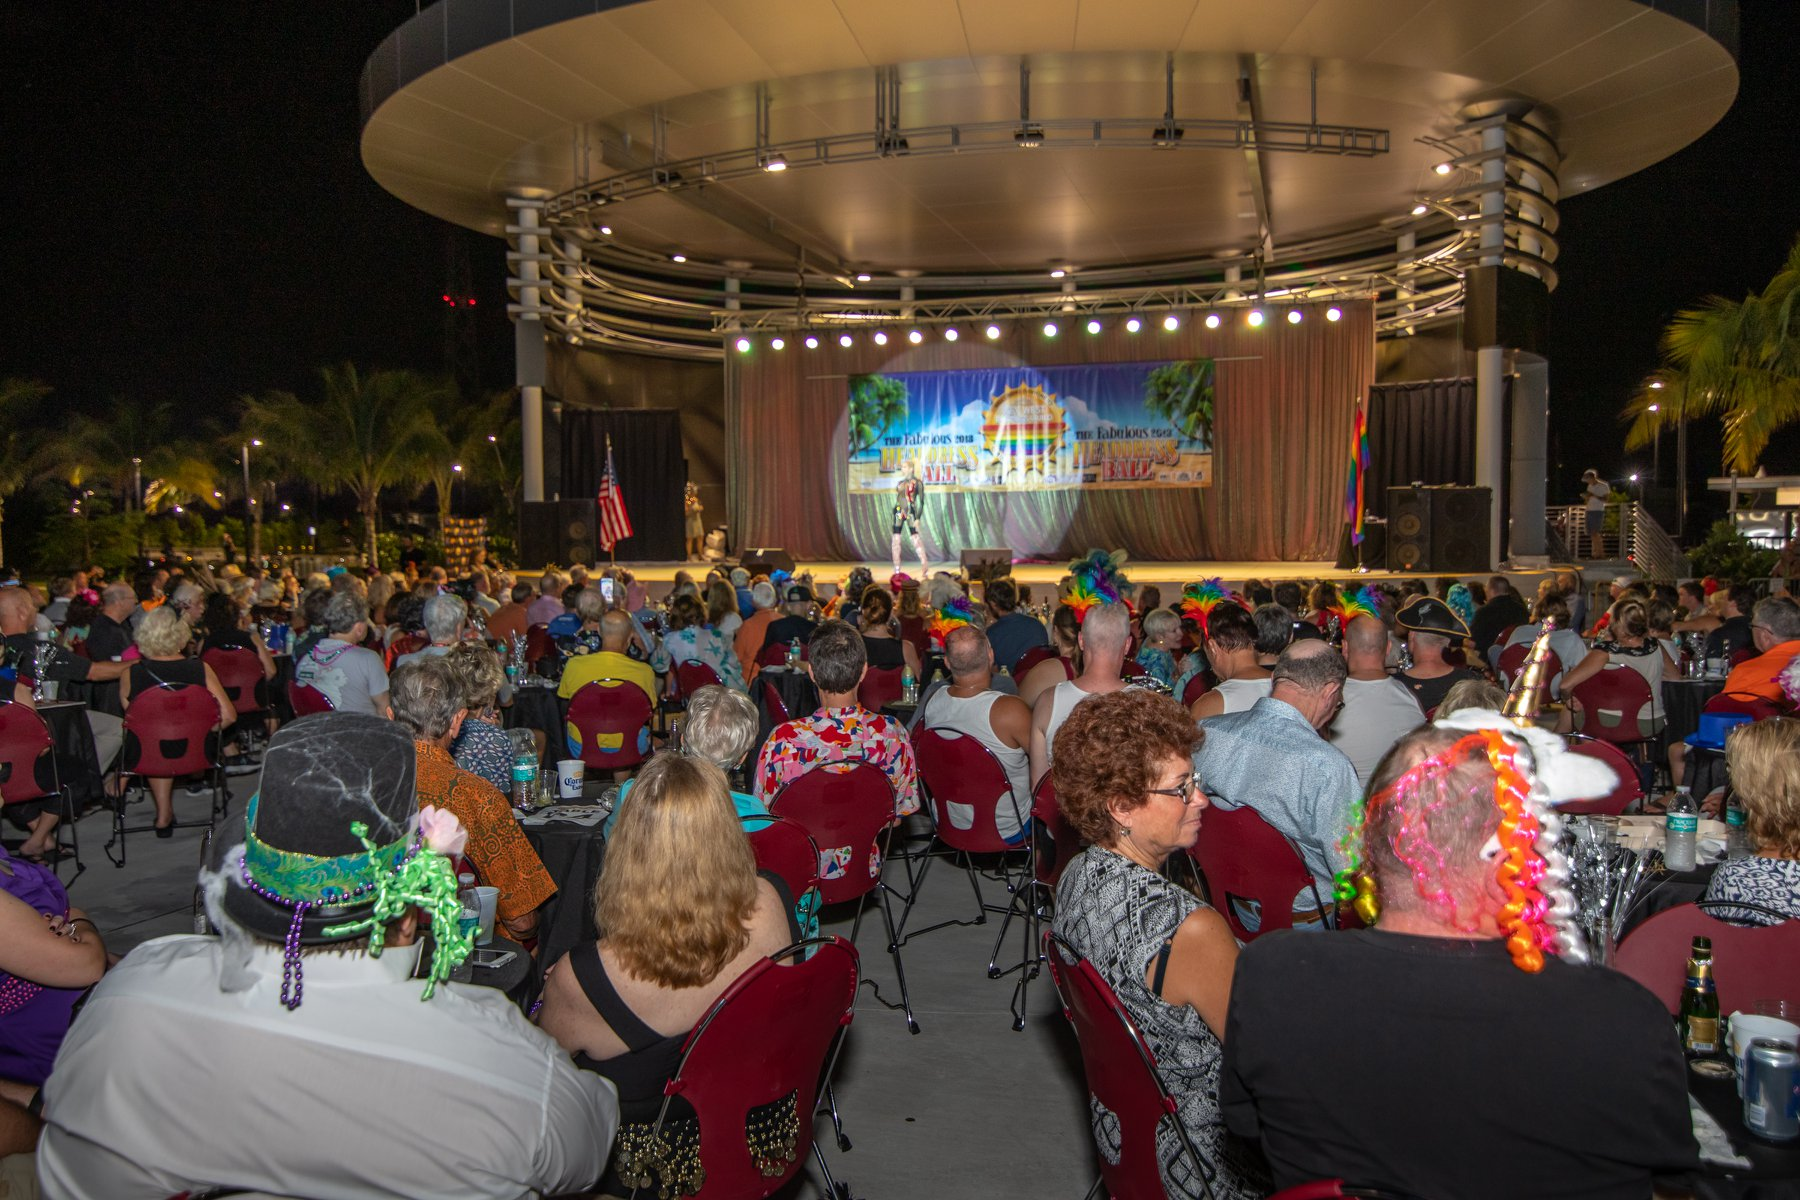 crowd at the key west amphitheater